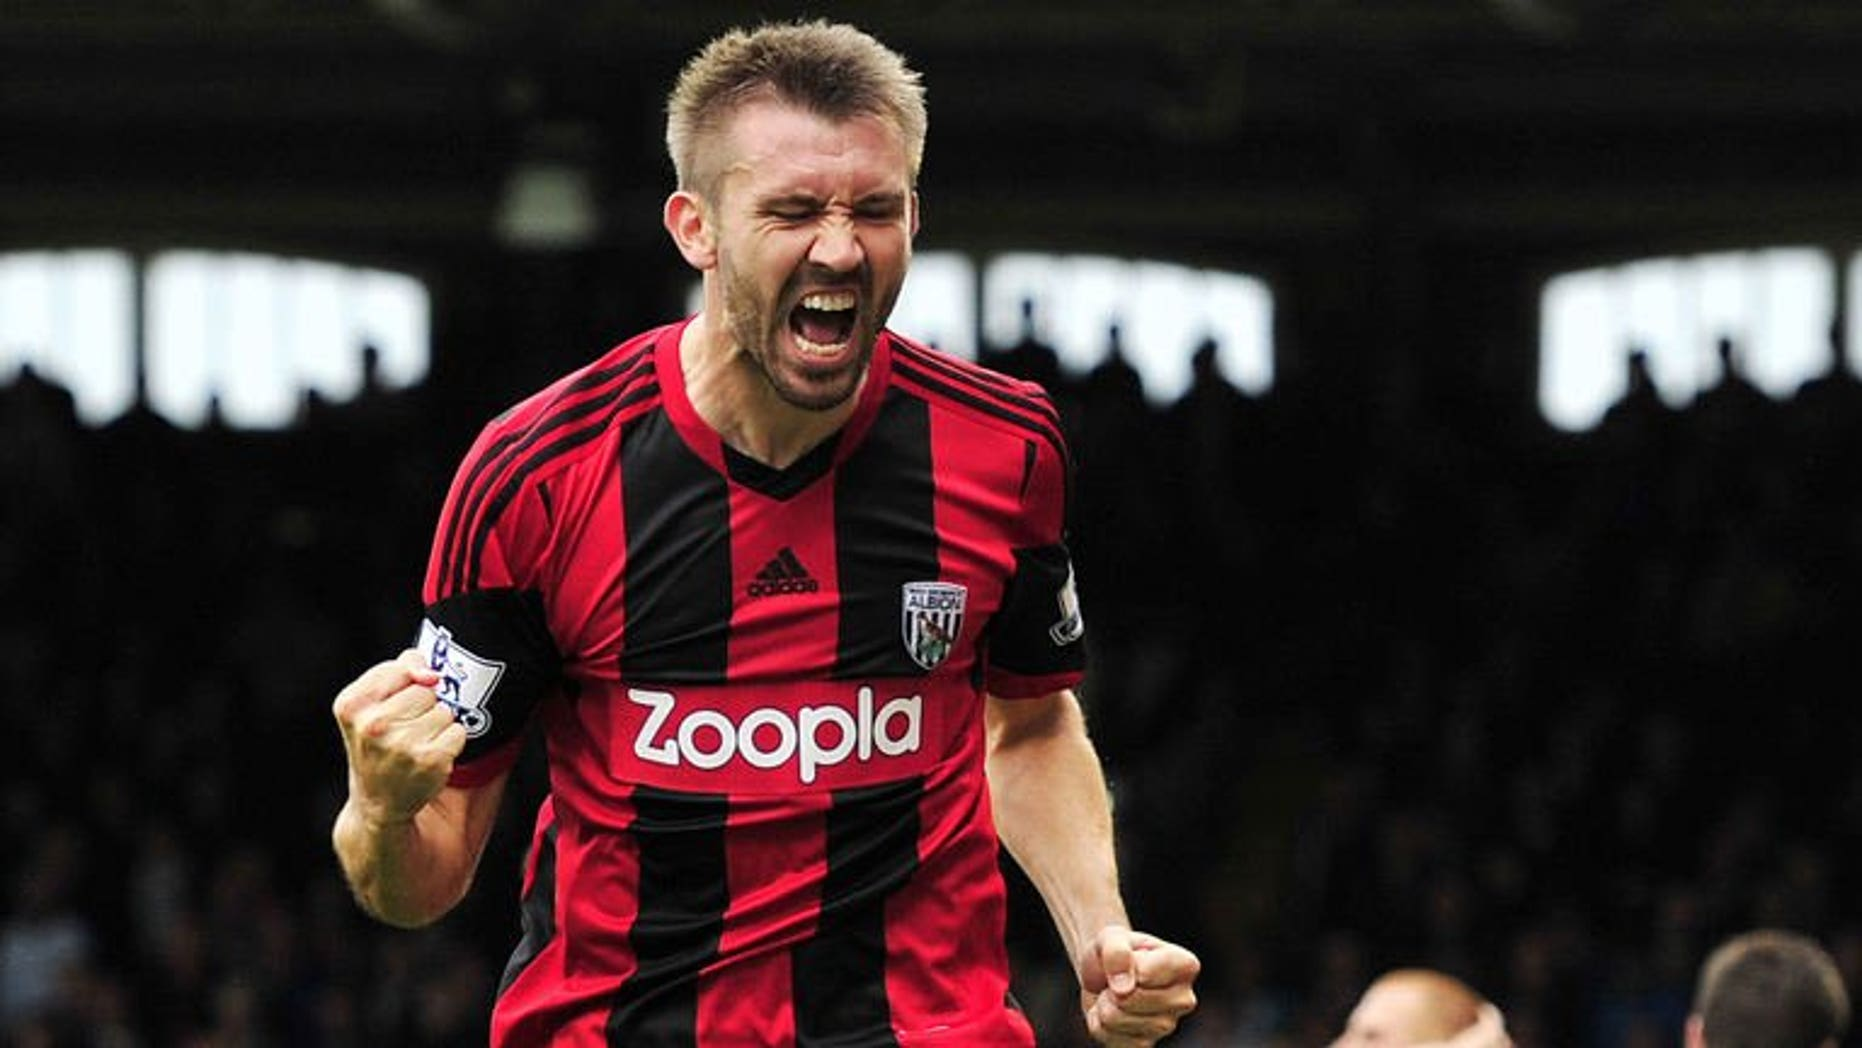 West Bromwich Albion's Northern Irish defender Gareth McAuley celebrates scoring the equalising goal during the English Premier League football match between Fulham and West Bromwich Albion at Craven Cottage in London on September 14, 2013. The match ended in a 1-1 draw.